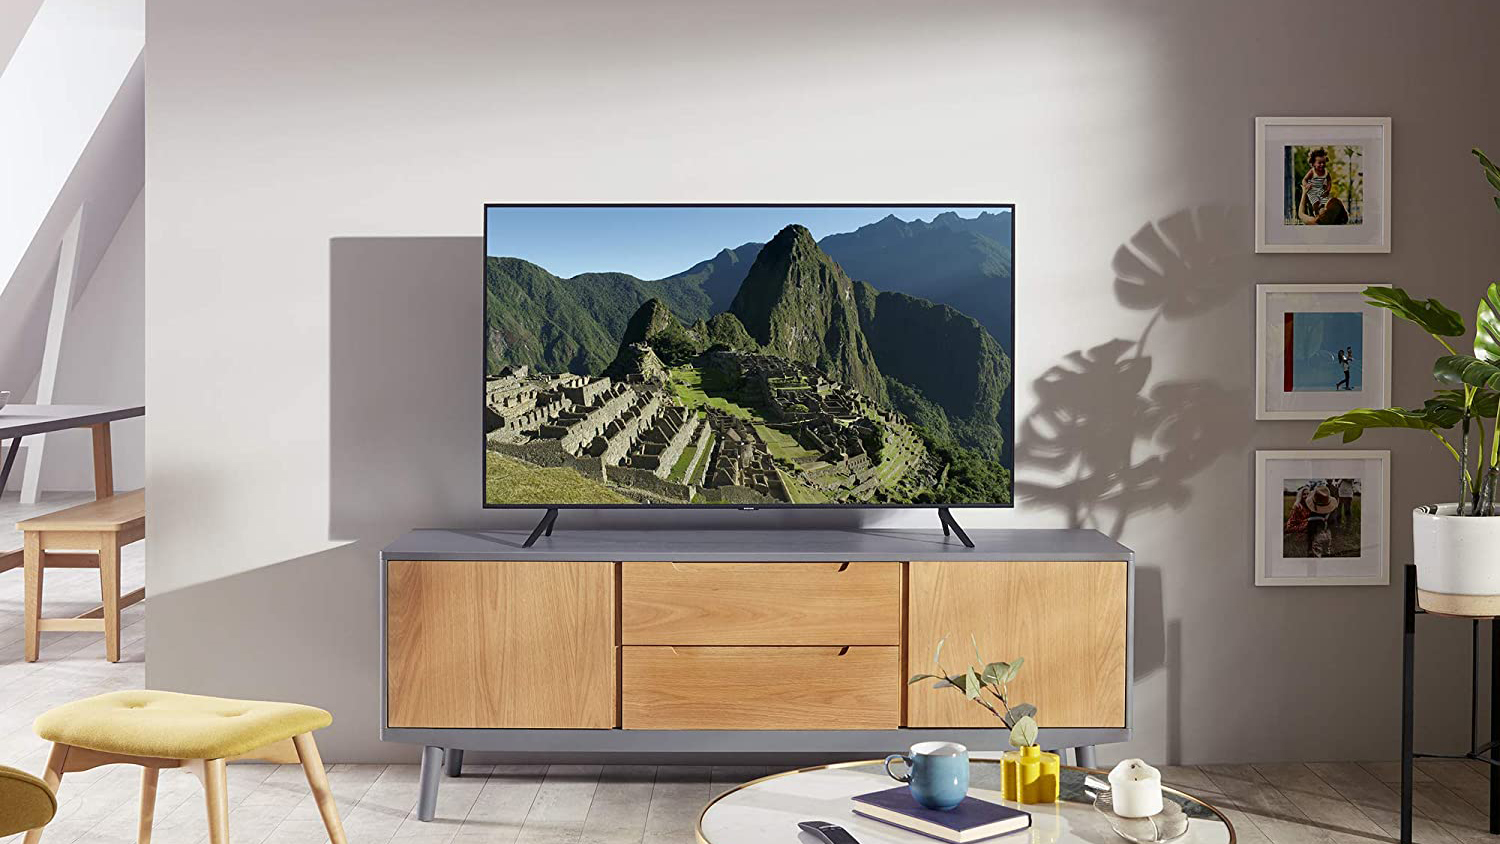 Best 43 Inch Tvs Cinematic 4k Tvs Without The Giant Size T3